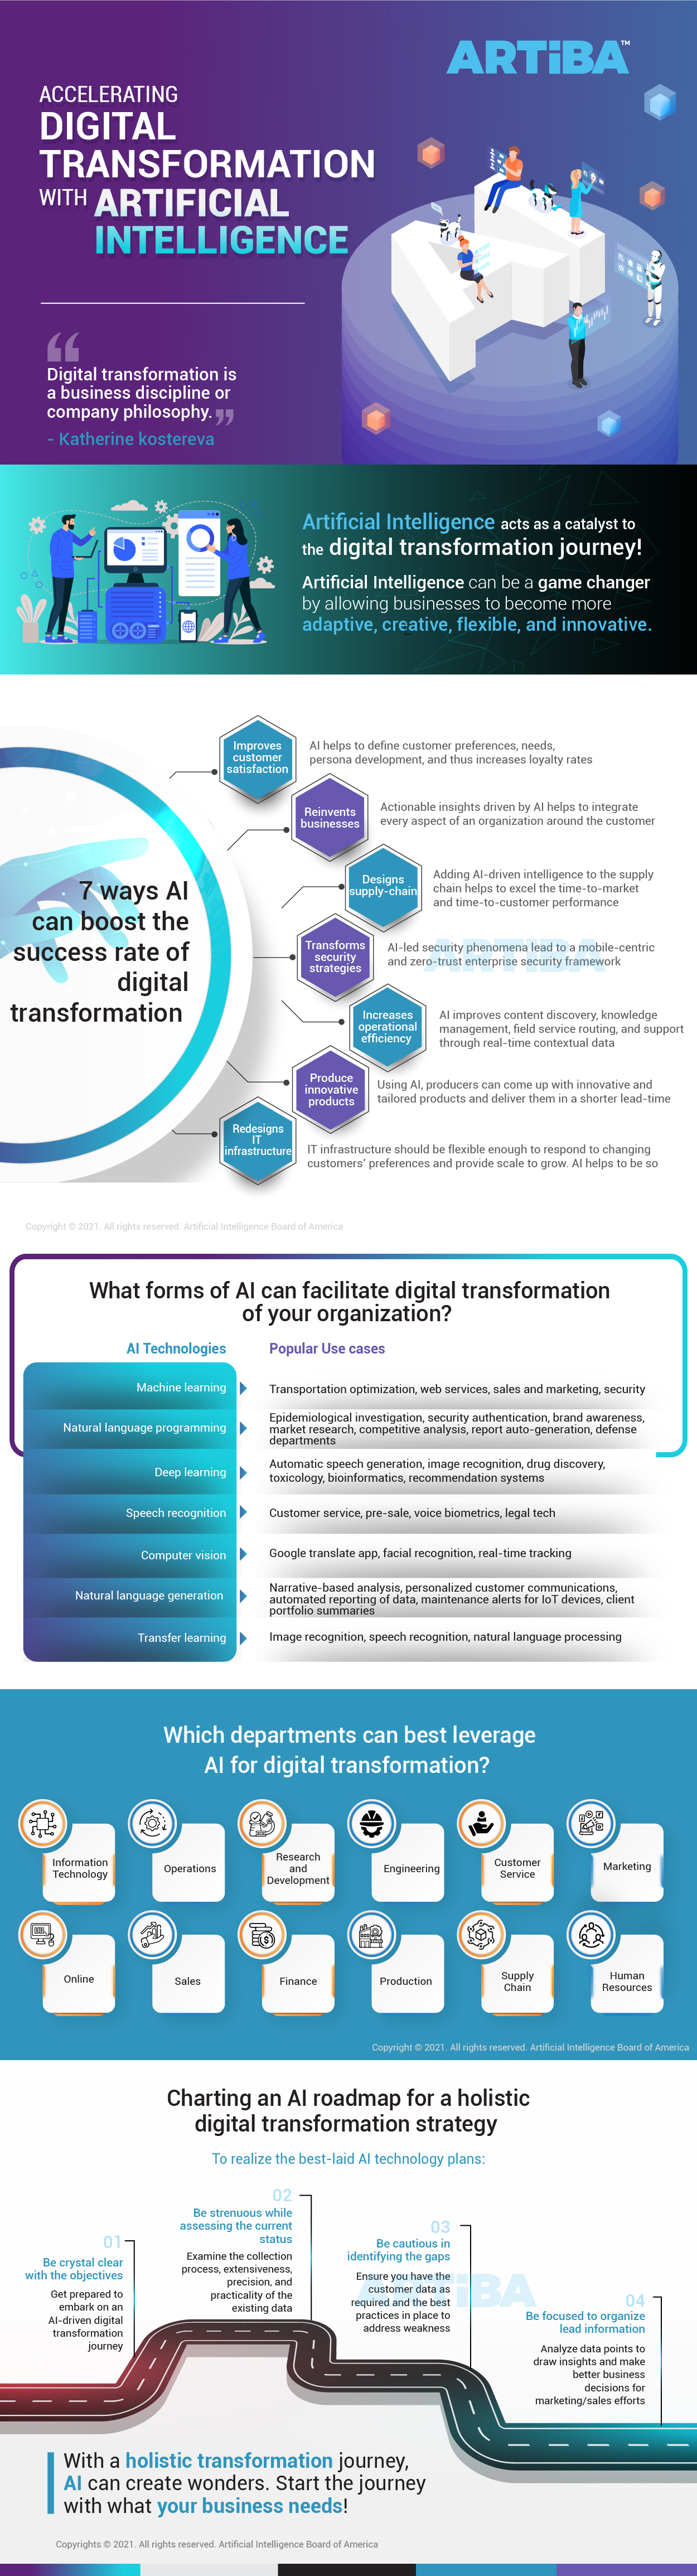 Accelerating Digital Transformation with Artificial Intelligence